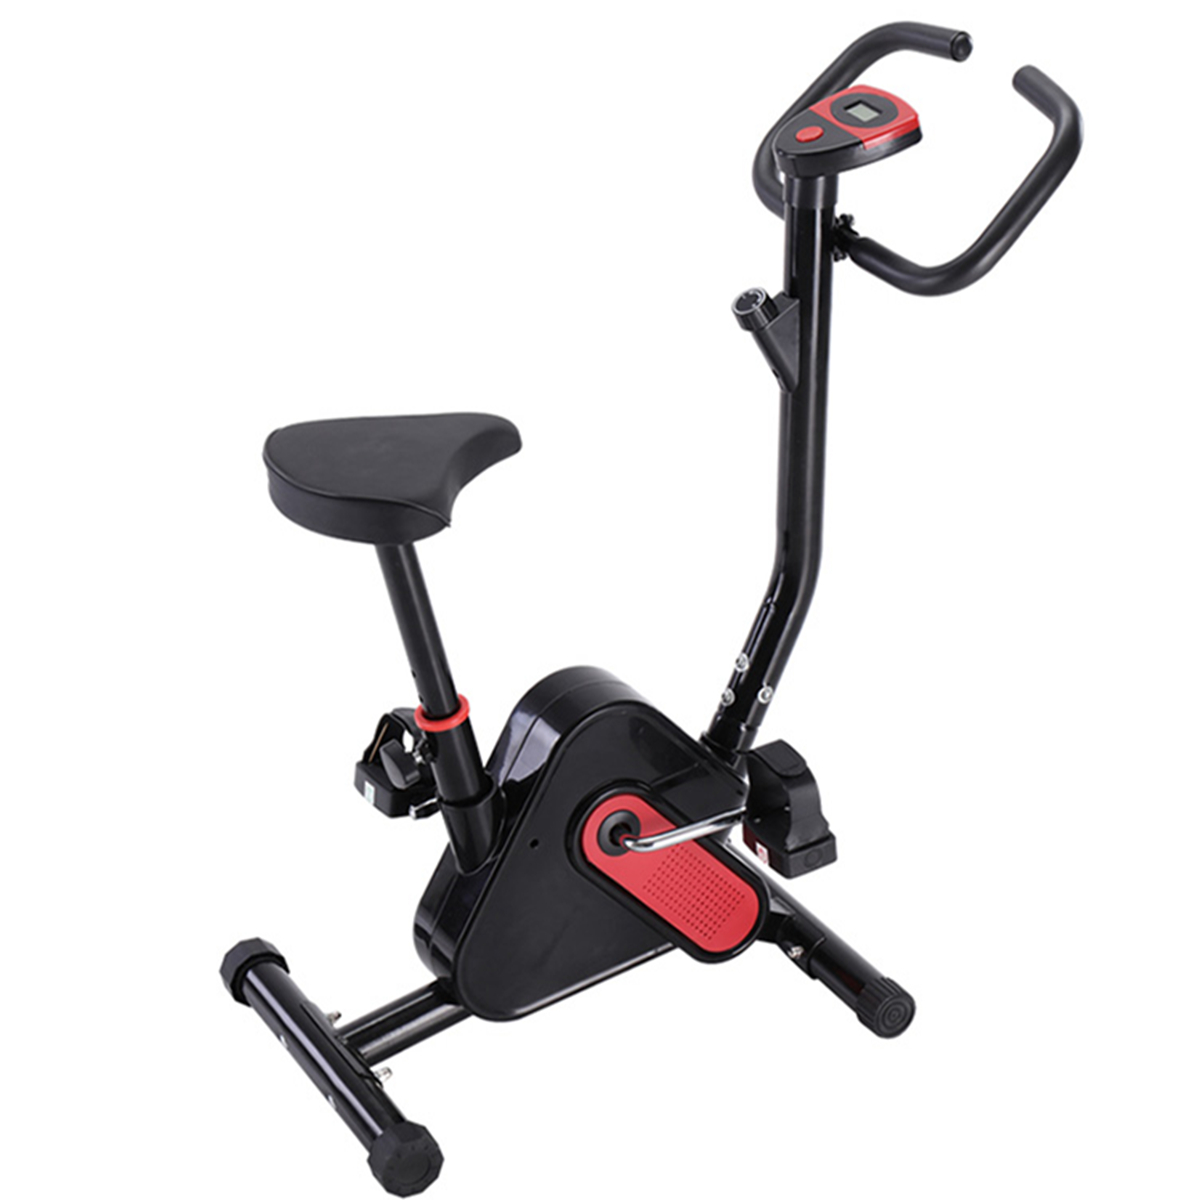 LED Display Bicycle Fitness Exercise Bike Cardio Tools Home Indoor Cycling Trainer Stationary Body Building Fitness EquipmentLED Display Bicycle Fitness Exercise Bike Cardio Tools Home Indoor Cycling Trainer Stationary Body Building Fitness Equipment